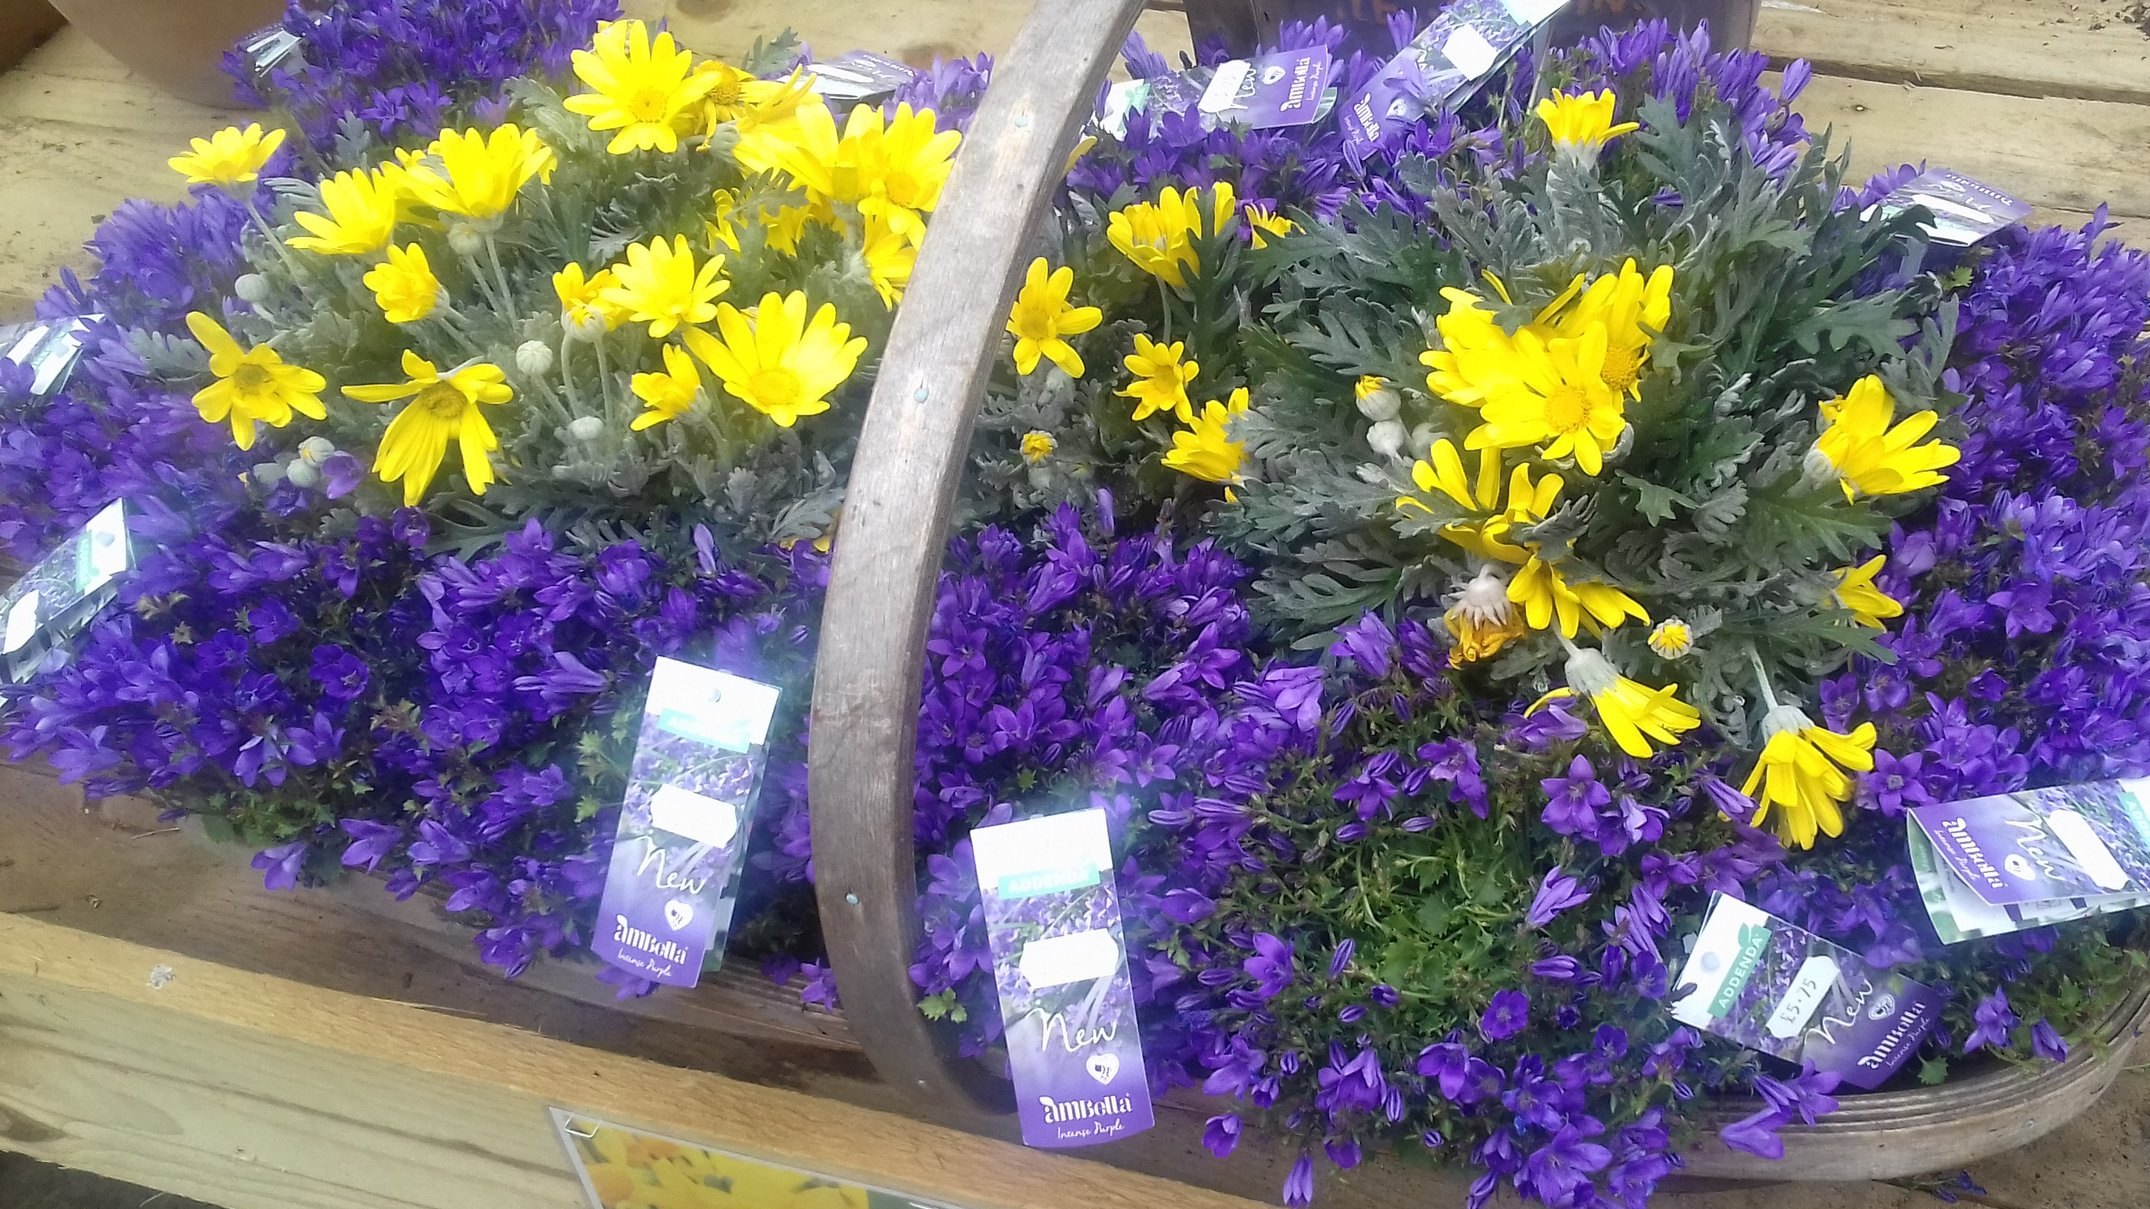 Spring - Plant offers, plus biodegradable pots, plus lots more.